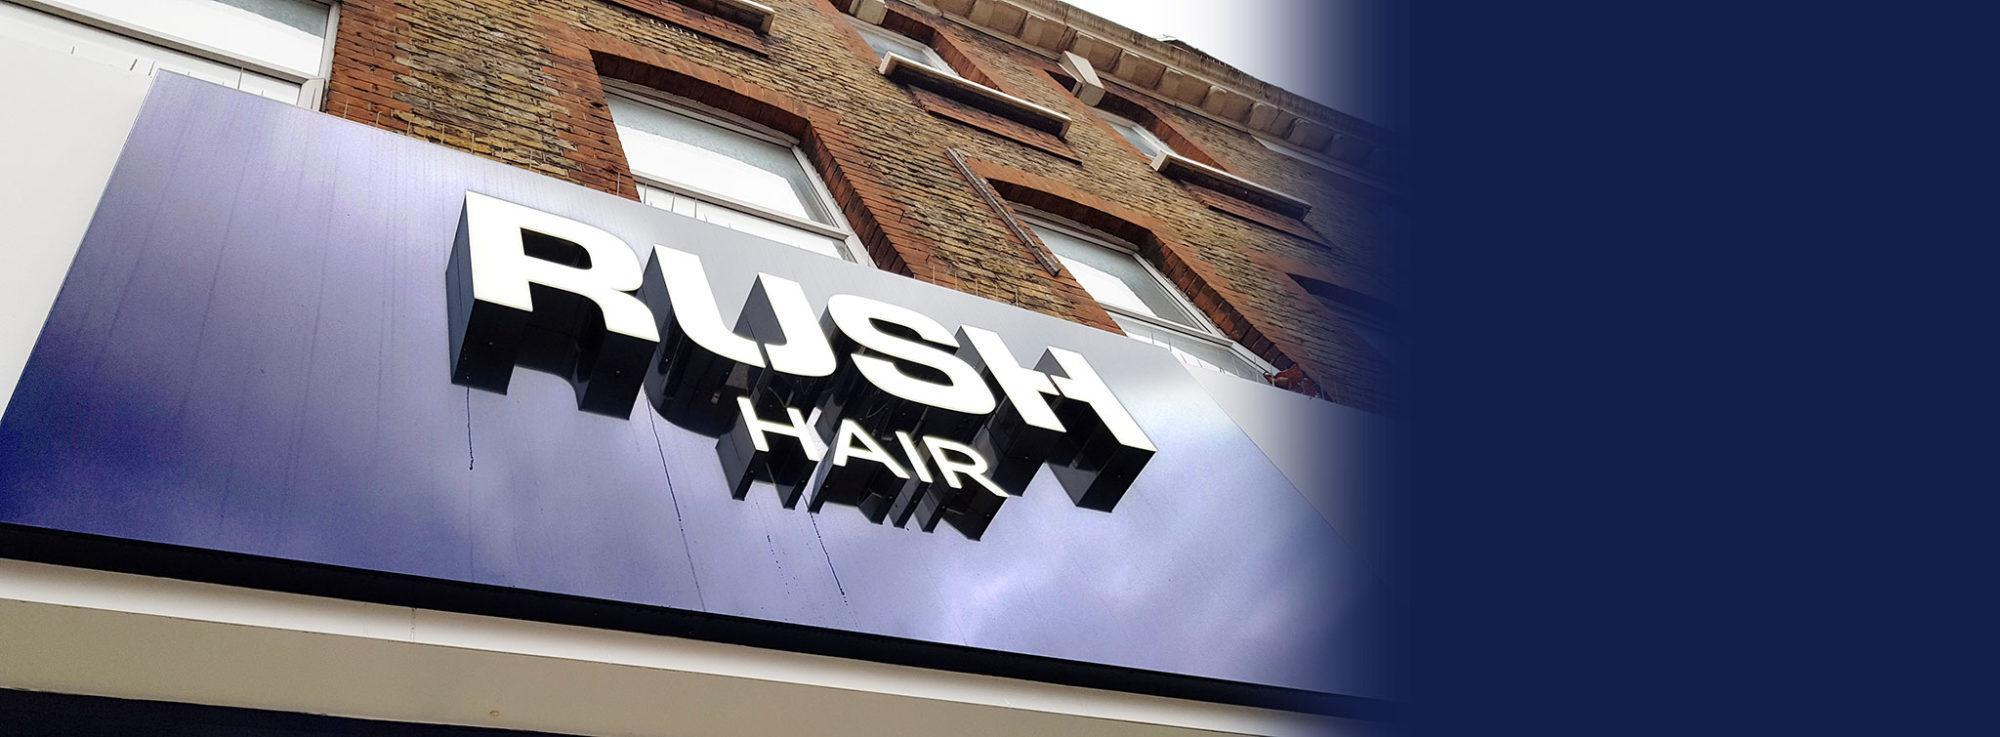 RUSH Hair Camden Sign